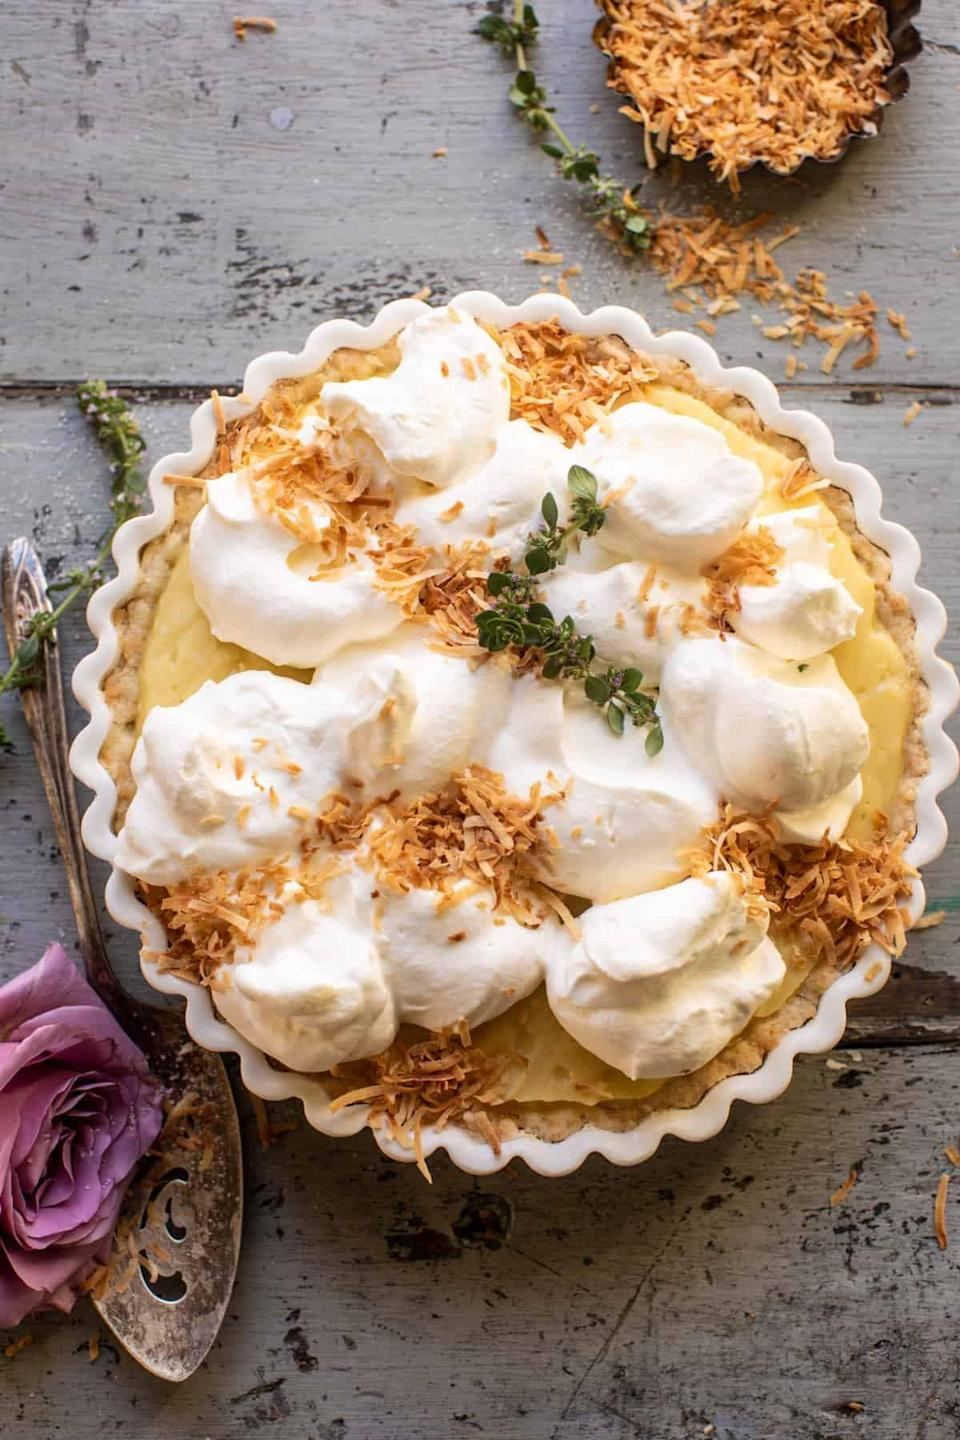 "<p>There's something special about a homemade coconut-cream pie, especially when it's made with a tangy lemon twist. This recipe is comprised of a sweet coconut crust that's layered with vanilla coconut pudding and topped with coconut-flaked whipped cream and a light dusting of lemon sugar. Yes, please.</p> <p><strong>Get the recipe</strong>: <a href=""https://www.halfbakedharvest.com/lemon-sugar-coconut-cream-pie/"" class=""link rapid-noclick-resp"" rel=""nofollow noopener"" target=""_blank"" data-ylk=""slk:lemon sugar coconut-cream pie"">lemon sugar coconut-cream pie</a></p>"